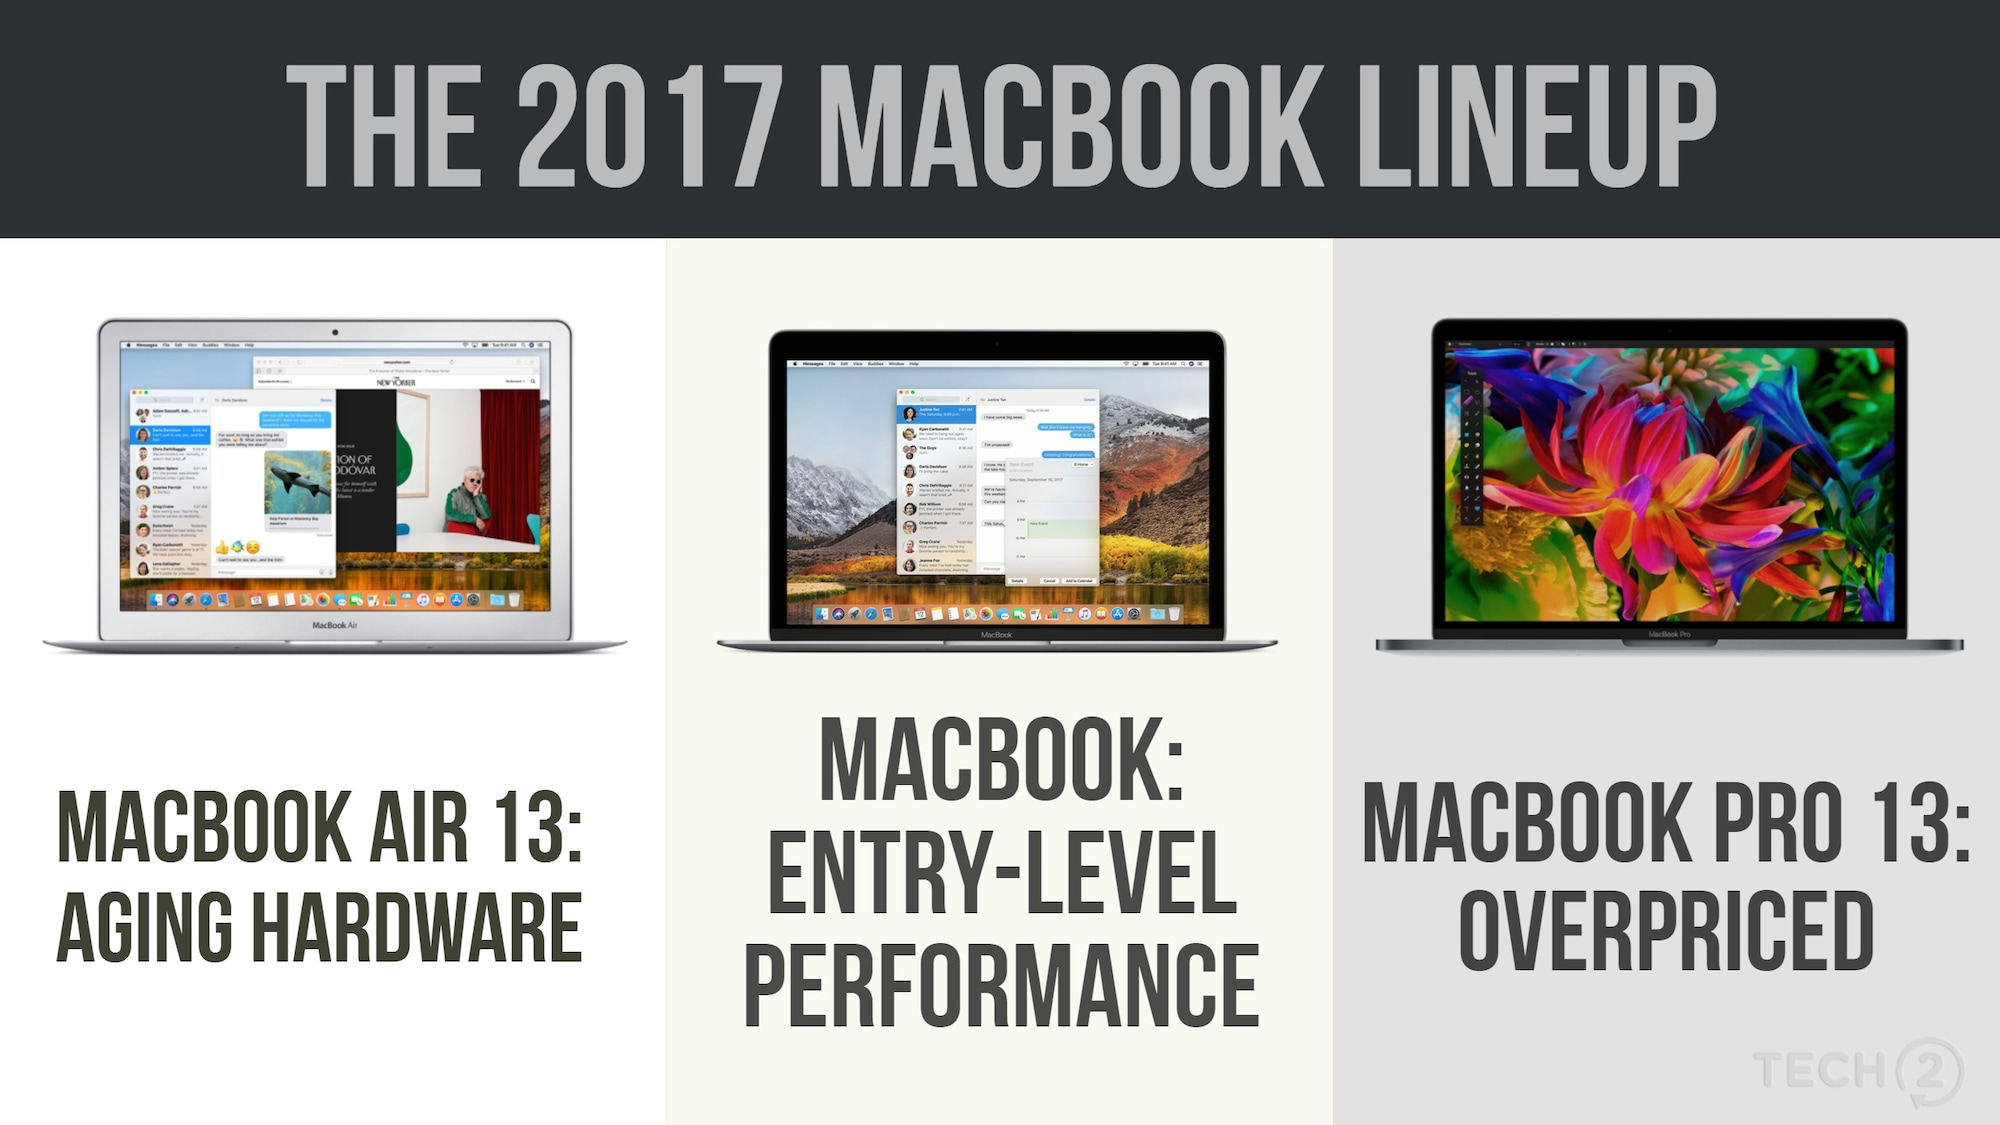 The Apple MacBook lineup is flawed and its ecosystem is confusing